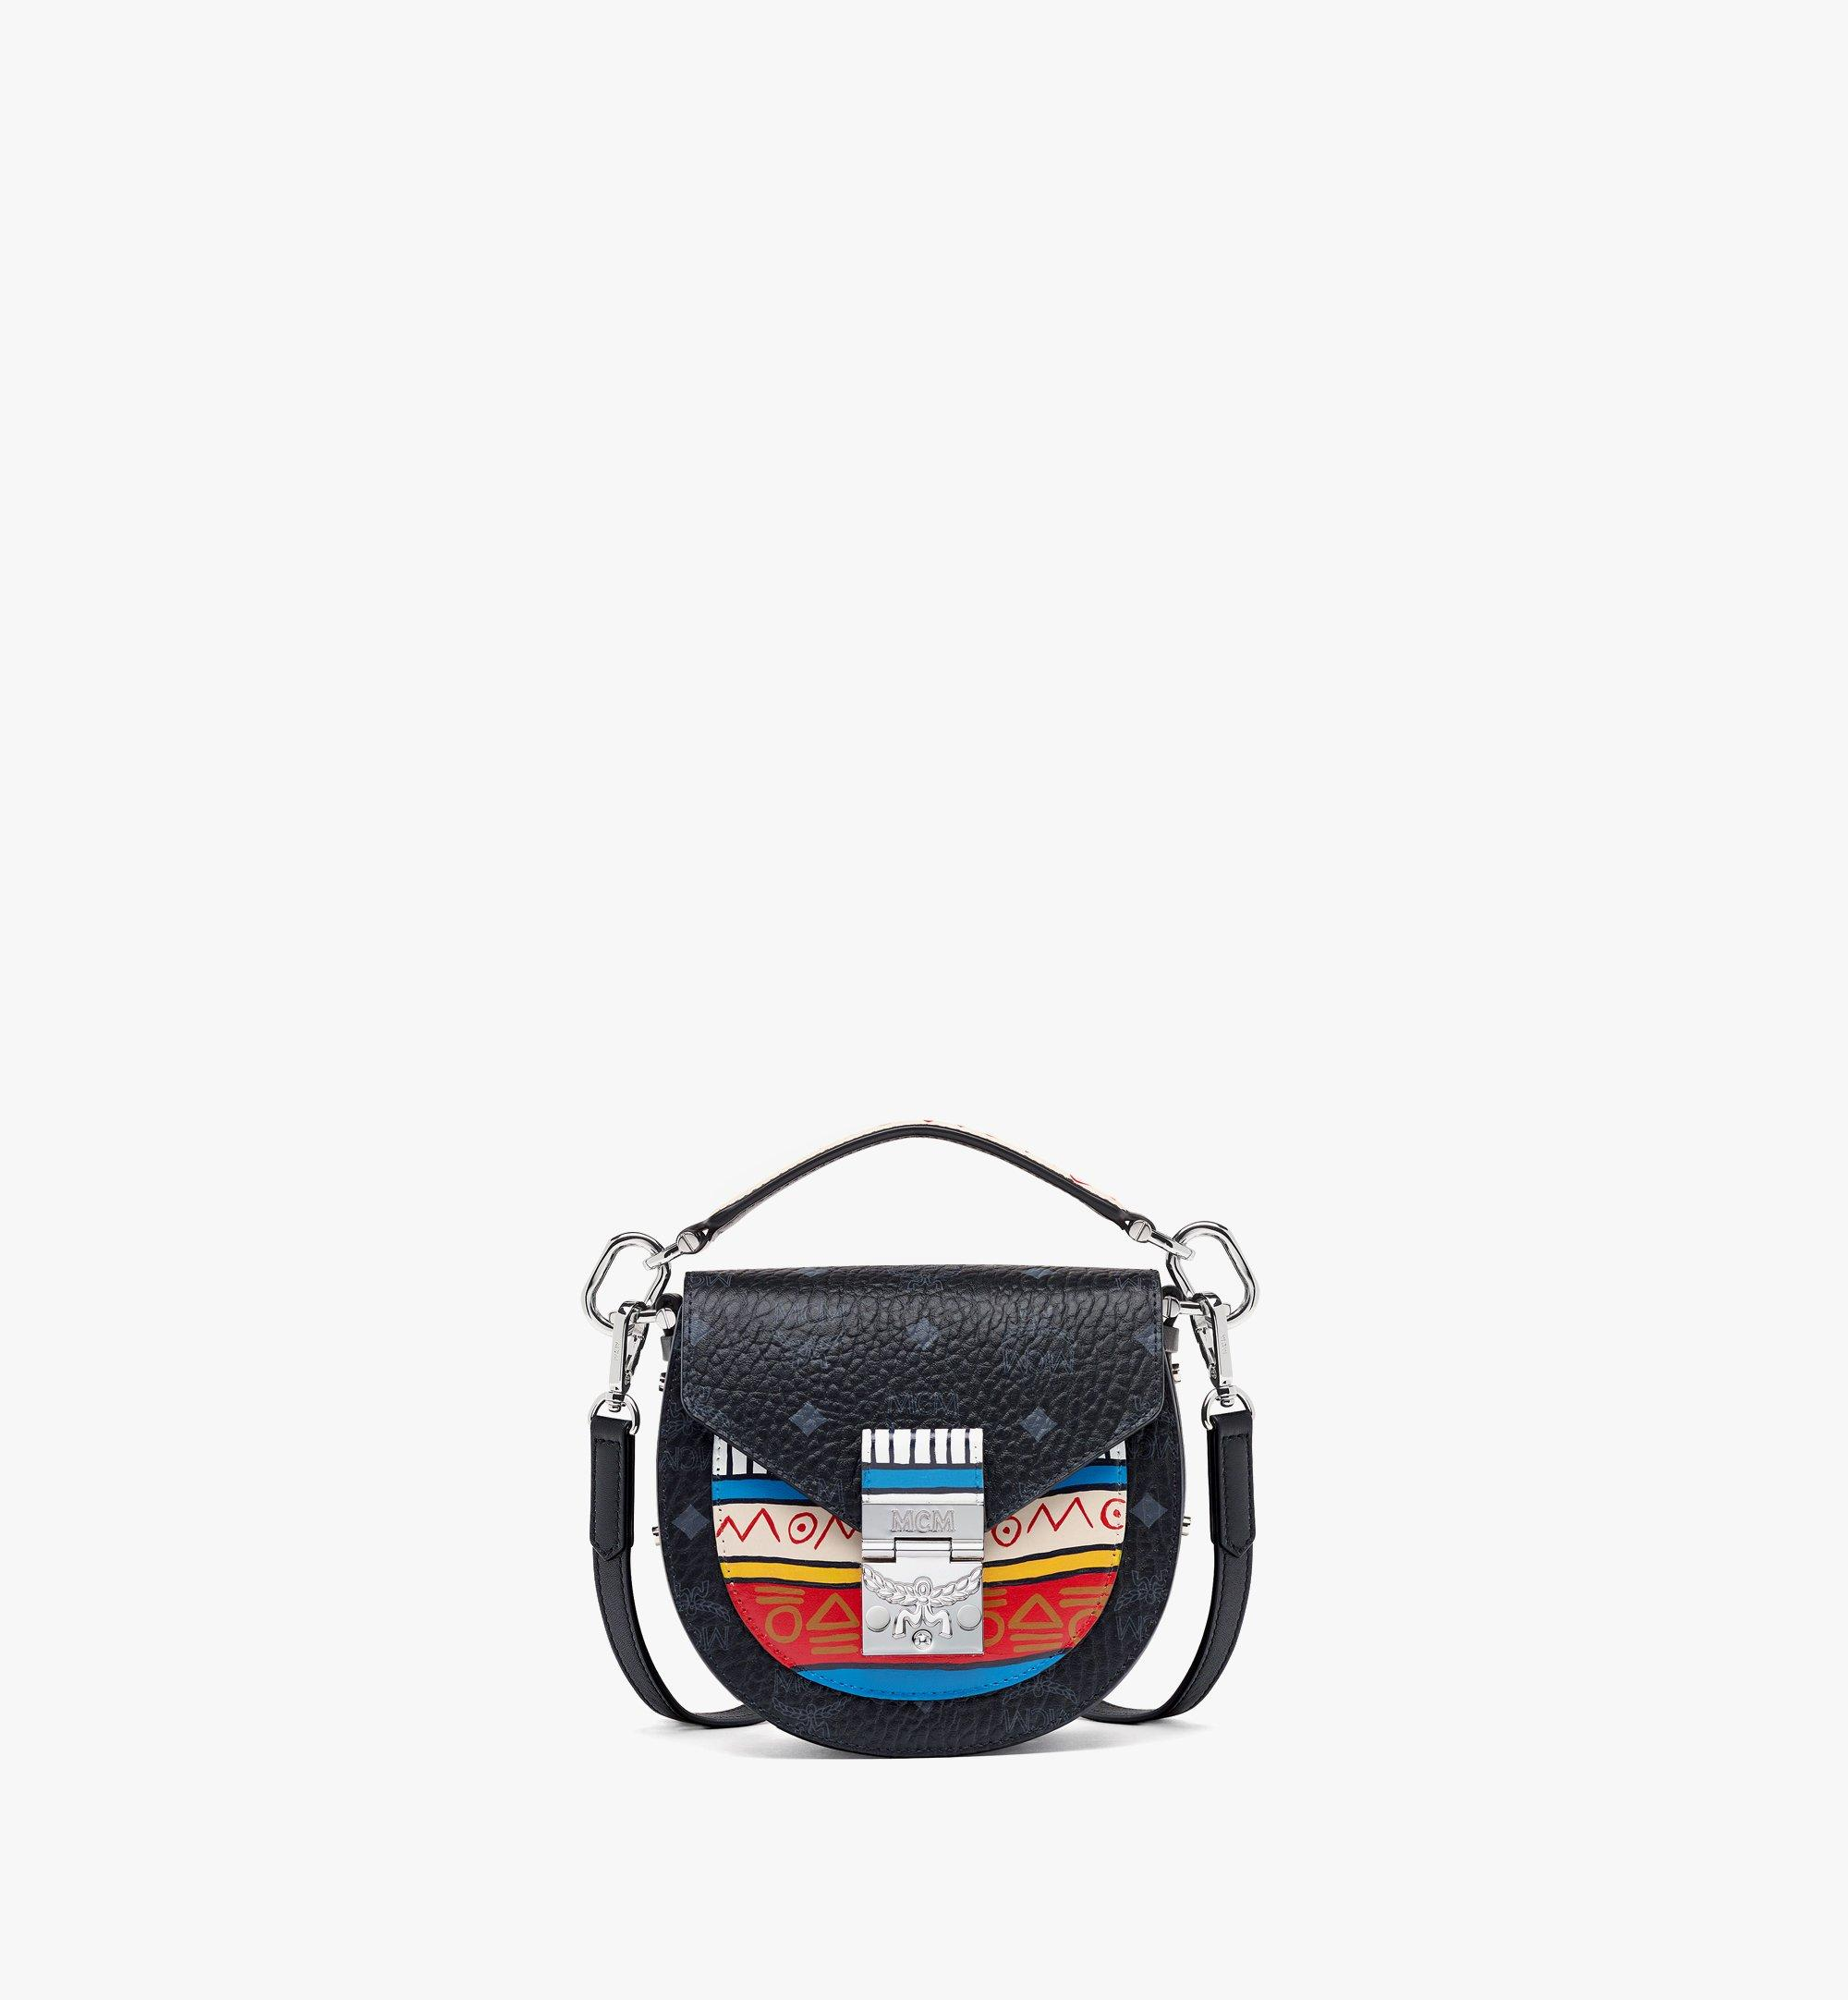 MCM Upcycling Project Patricia Shoulder Bag in Marquage Visetos Black MWSBSUP01BK001 Alternate View 1